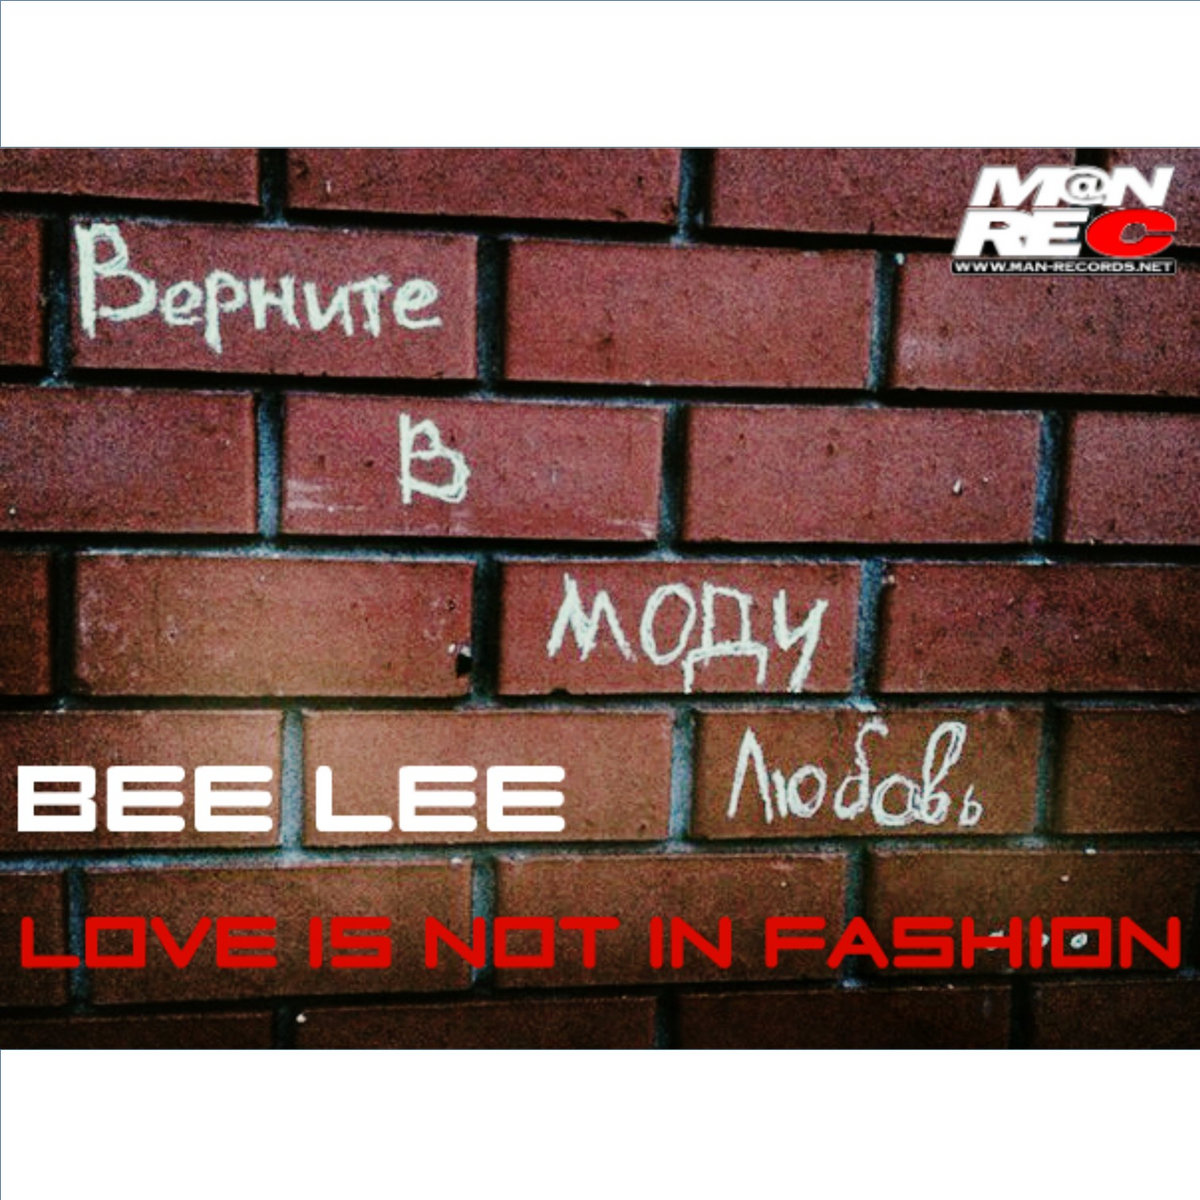 Bee Lee - Love Is Not In Fashion (2017) | MaN Records